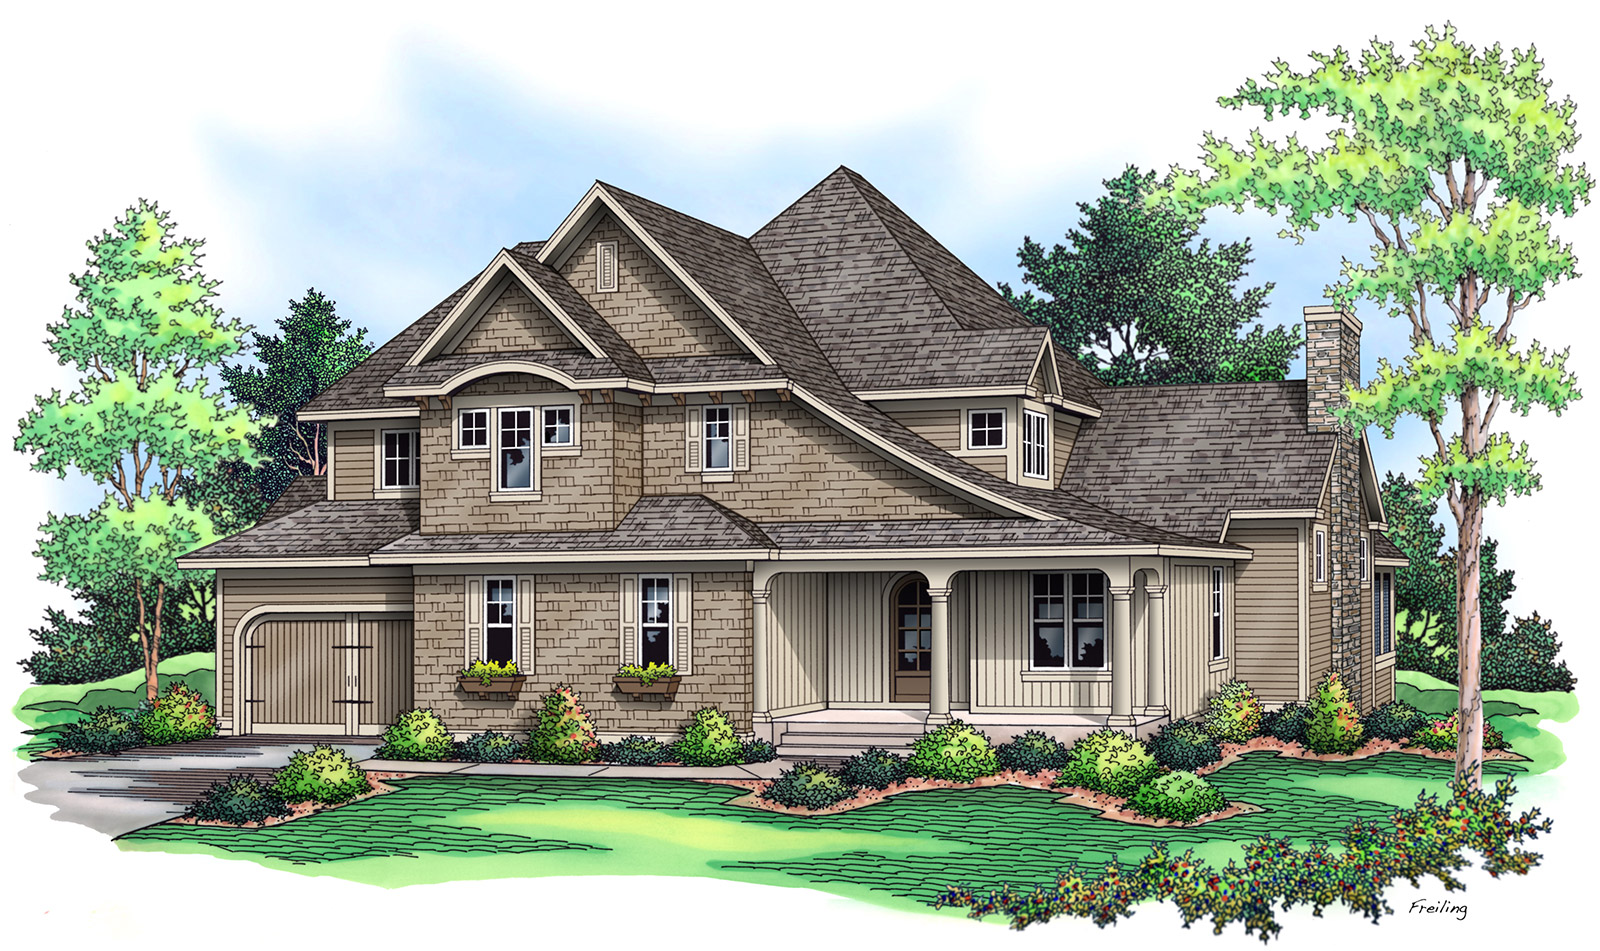 ... One Story French Country House Plans 11697 Aster Way Woodbury Mn 55129  Artisan Home Tour ...